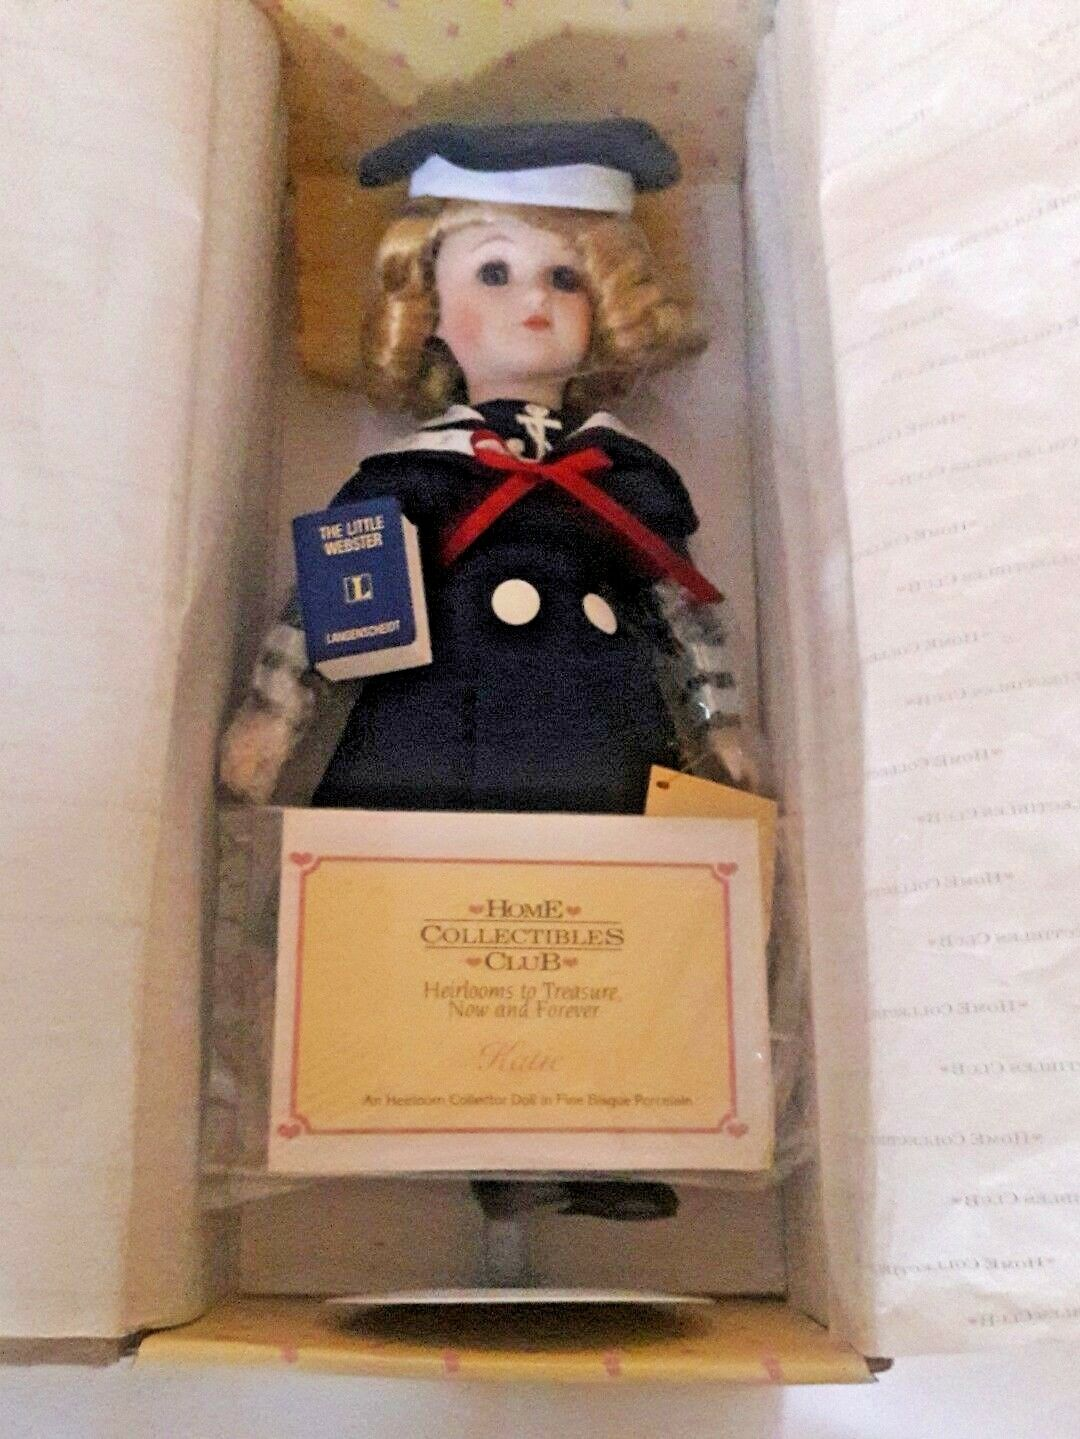 RARE COLLECTION VINTAGE PORCELAIN DOLL, STILL IN ORIGINAL BOX- AUTHENTIC